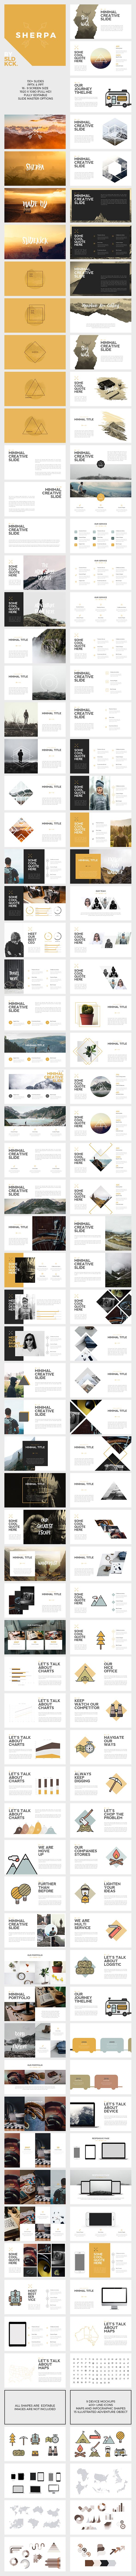 SHERPA - Hipster Powerpoint Presentation #deck #best • Click here to download ! http://graphicriver.net/item/sherpa-hipster-powerpoint-presentation/15721262?s_rank=48&ref=pxcr